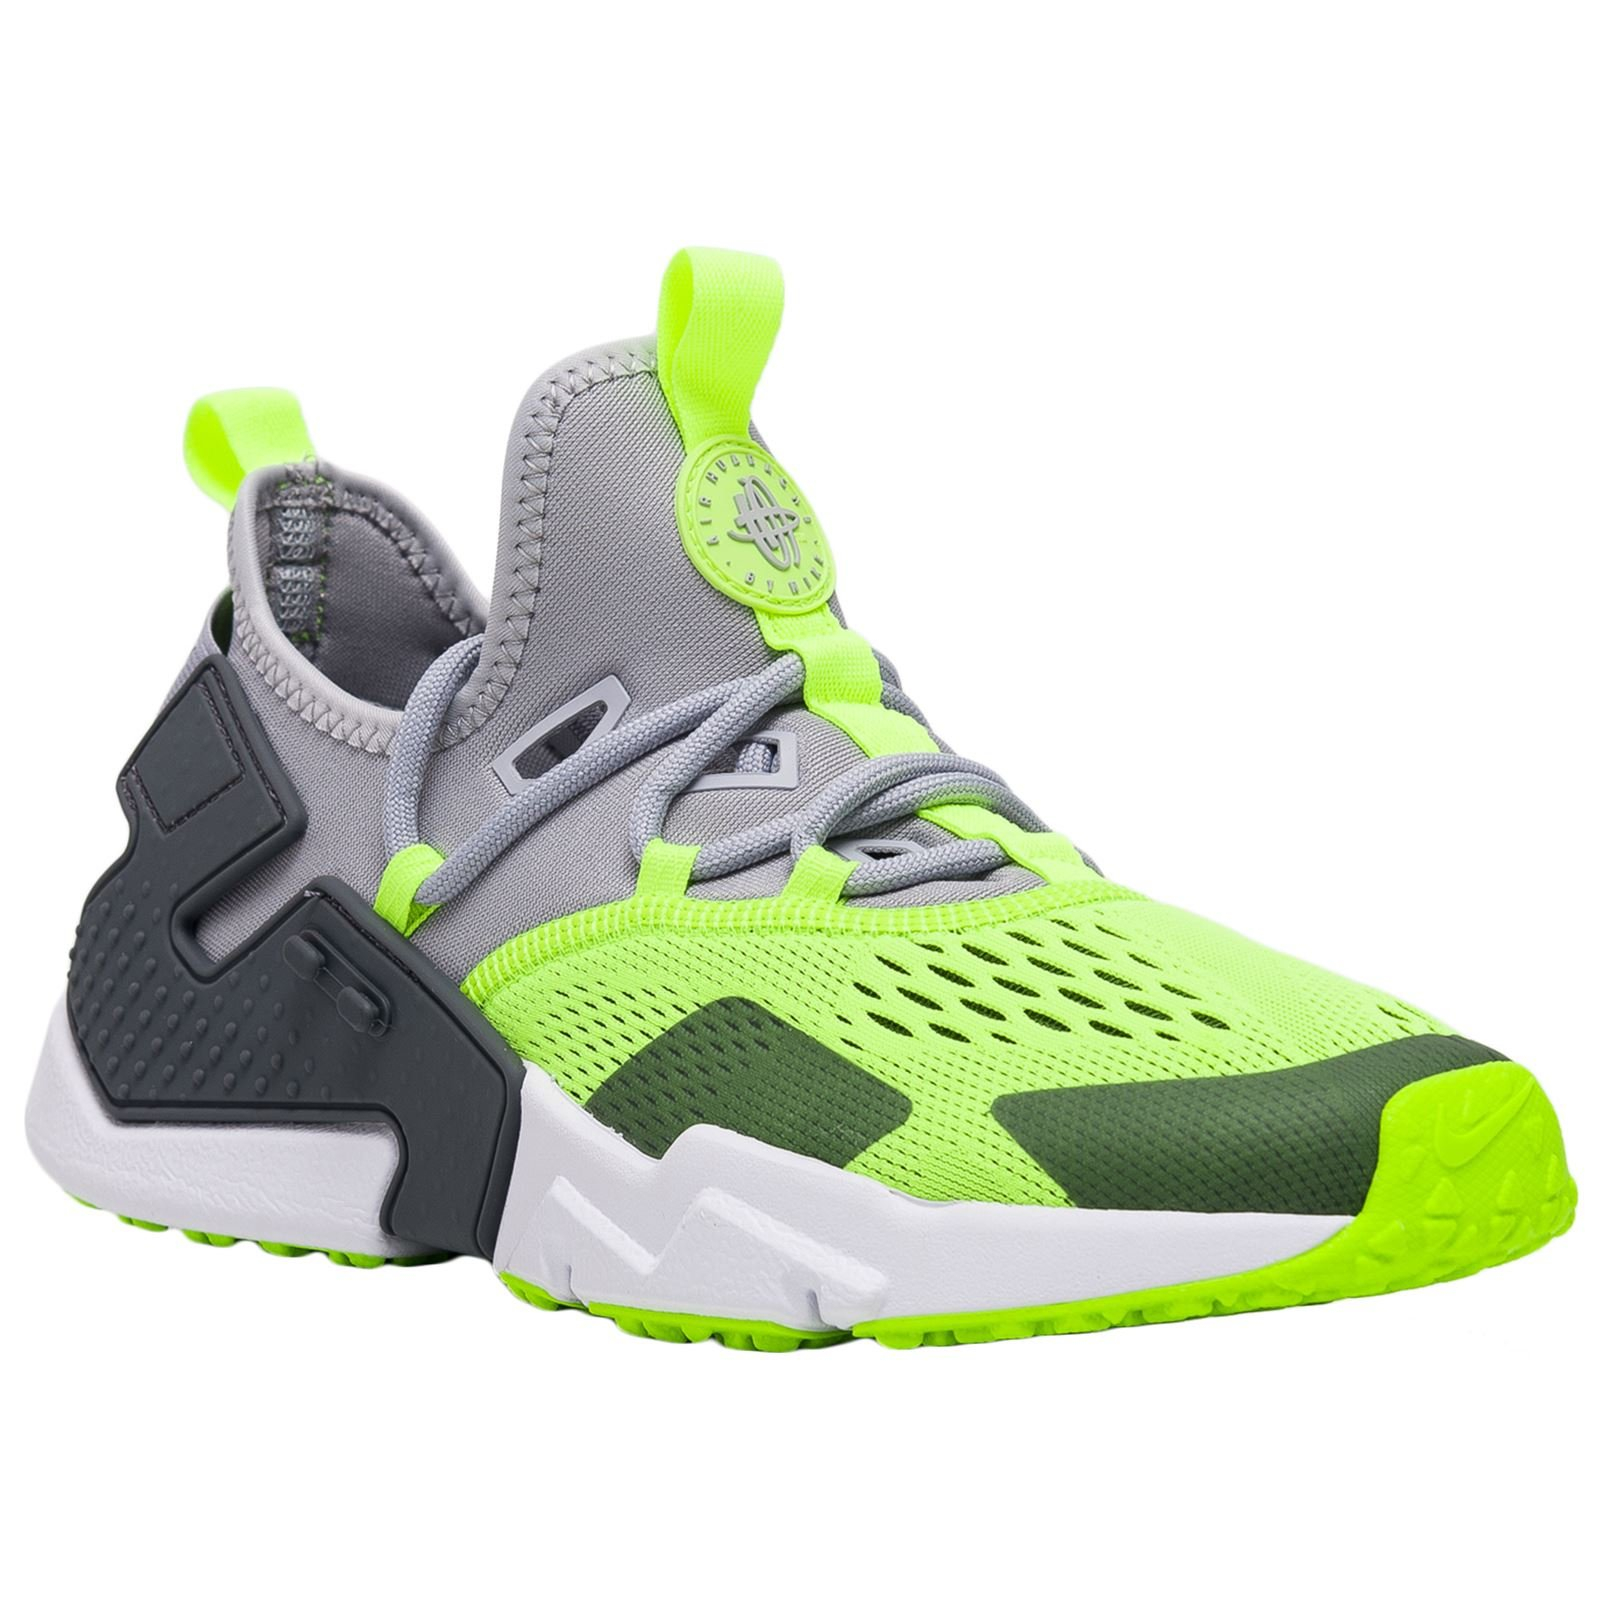 4a2ed733518c Galleon - Nike Air Huarache Drift BR Mens Shoes Wolf Grey Volt Dark  Grey White Ao1133-001 (10 D(M) US)